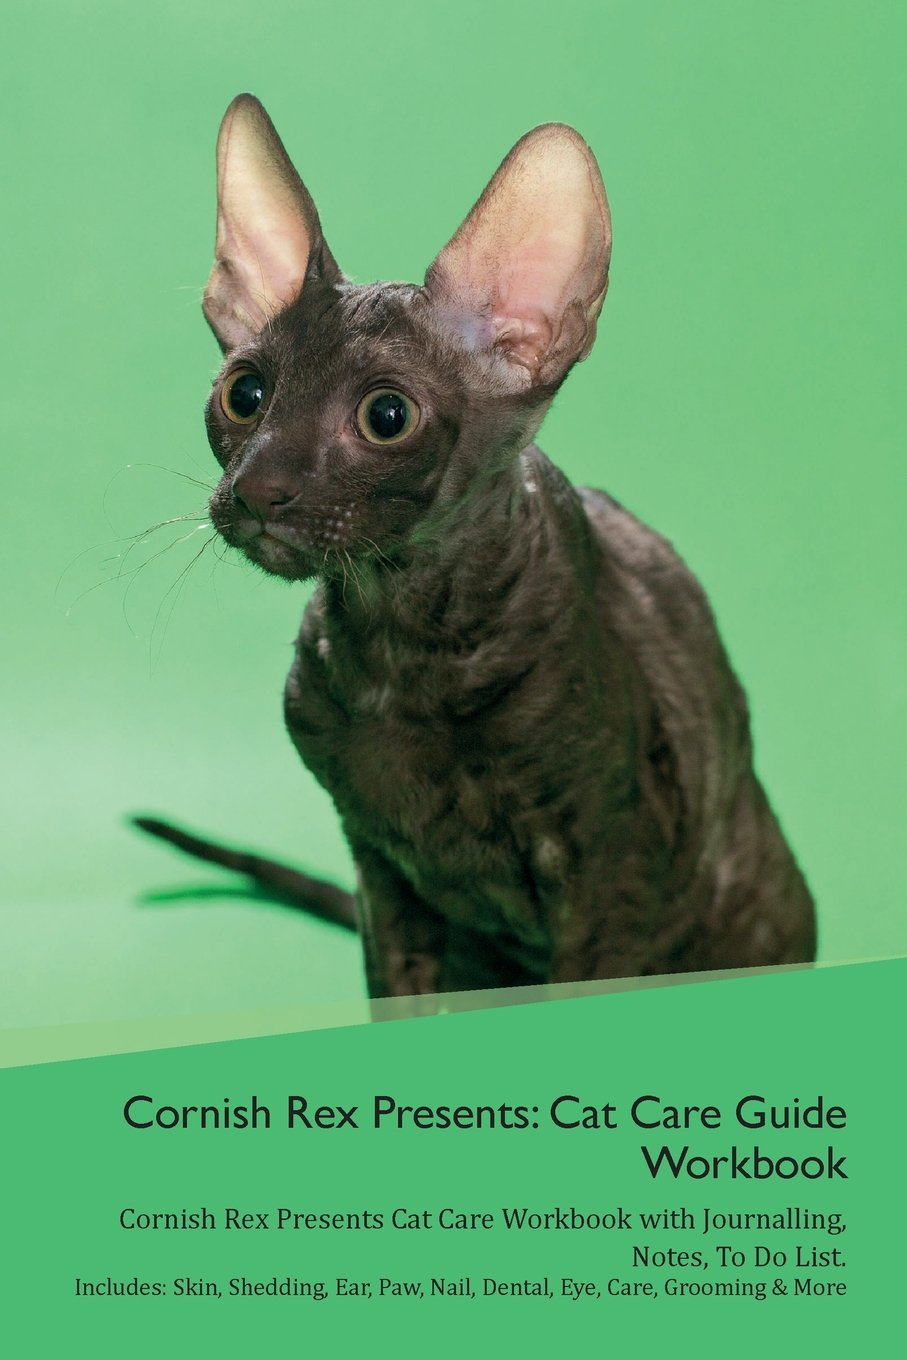 Read Online Cornish Rex Presents: Cat Care Guide Workbook Cornish Rex Presents Cat Care Workbook with Journalling, Notes, To Do List. Includes: Skin, Shedding, Ear, Paw, Nail, Dental, Eye, Care, Grooming & More pdf epub